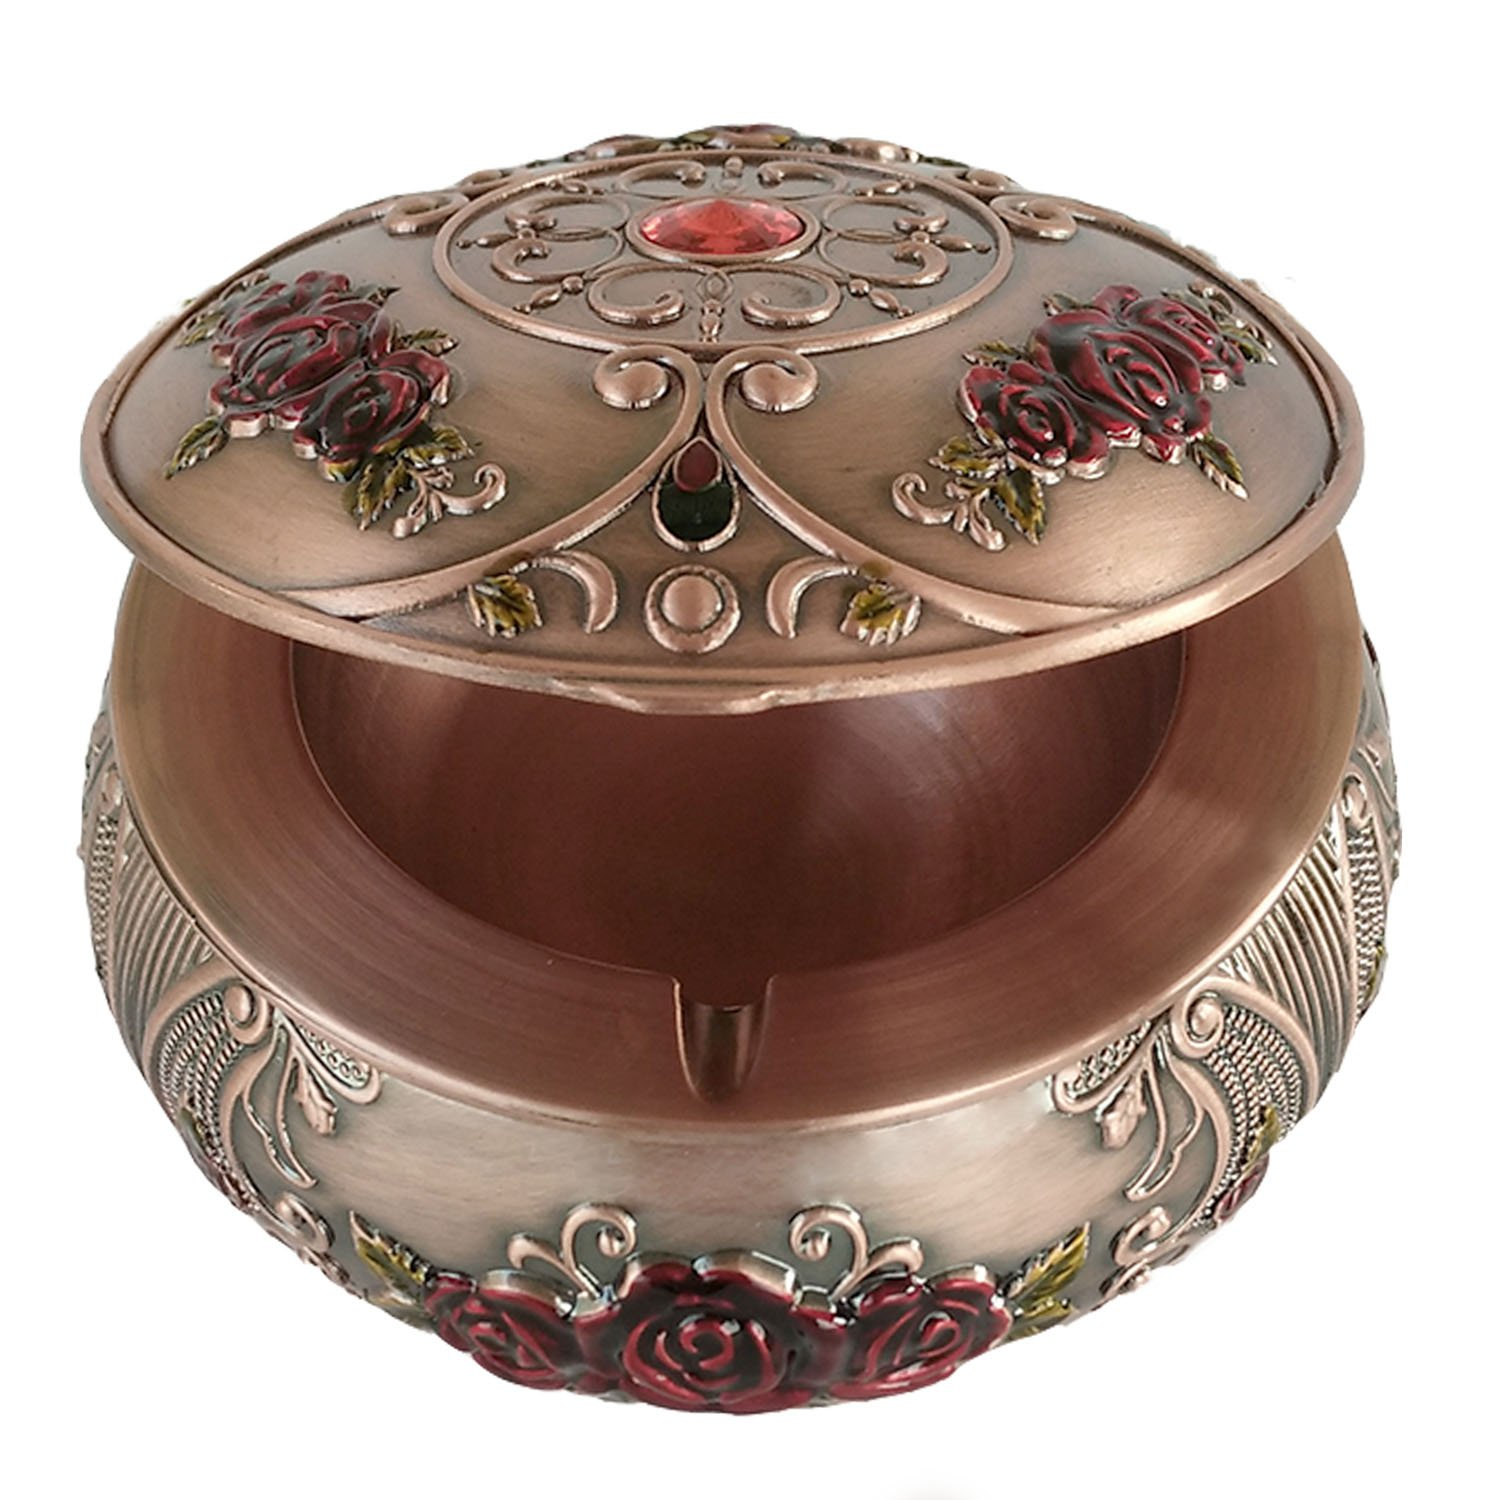 Magicpro Vintage Ashtray with Lids,Metal Cigarettes Ashtray for Outdoor & Indoor Use,Red Bronze